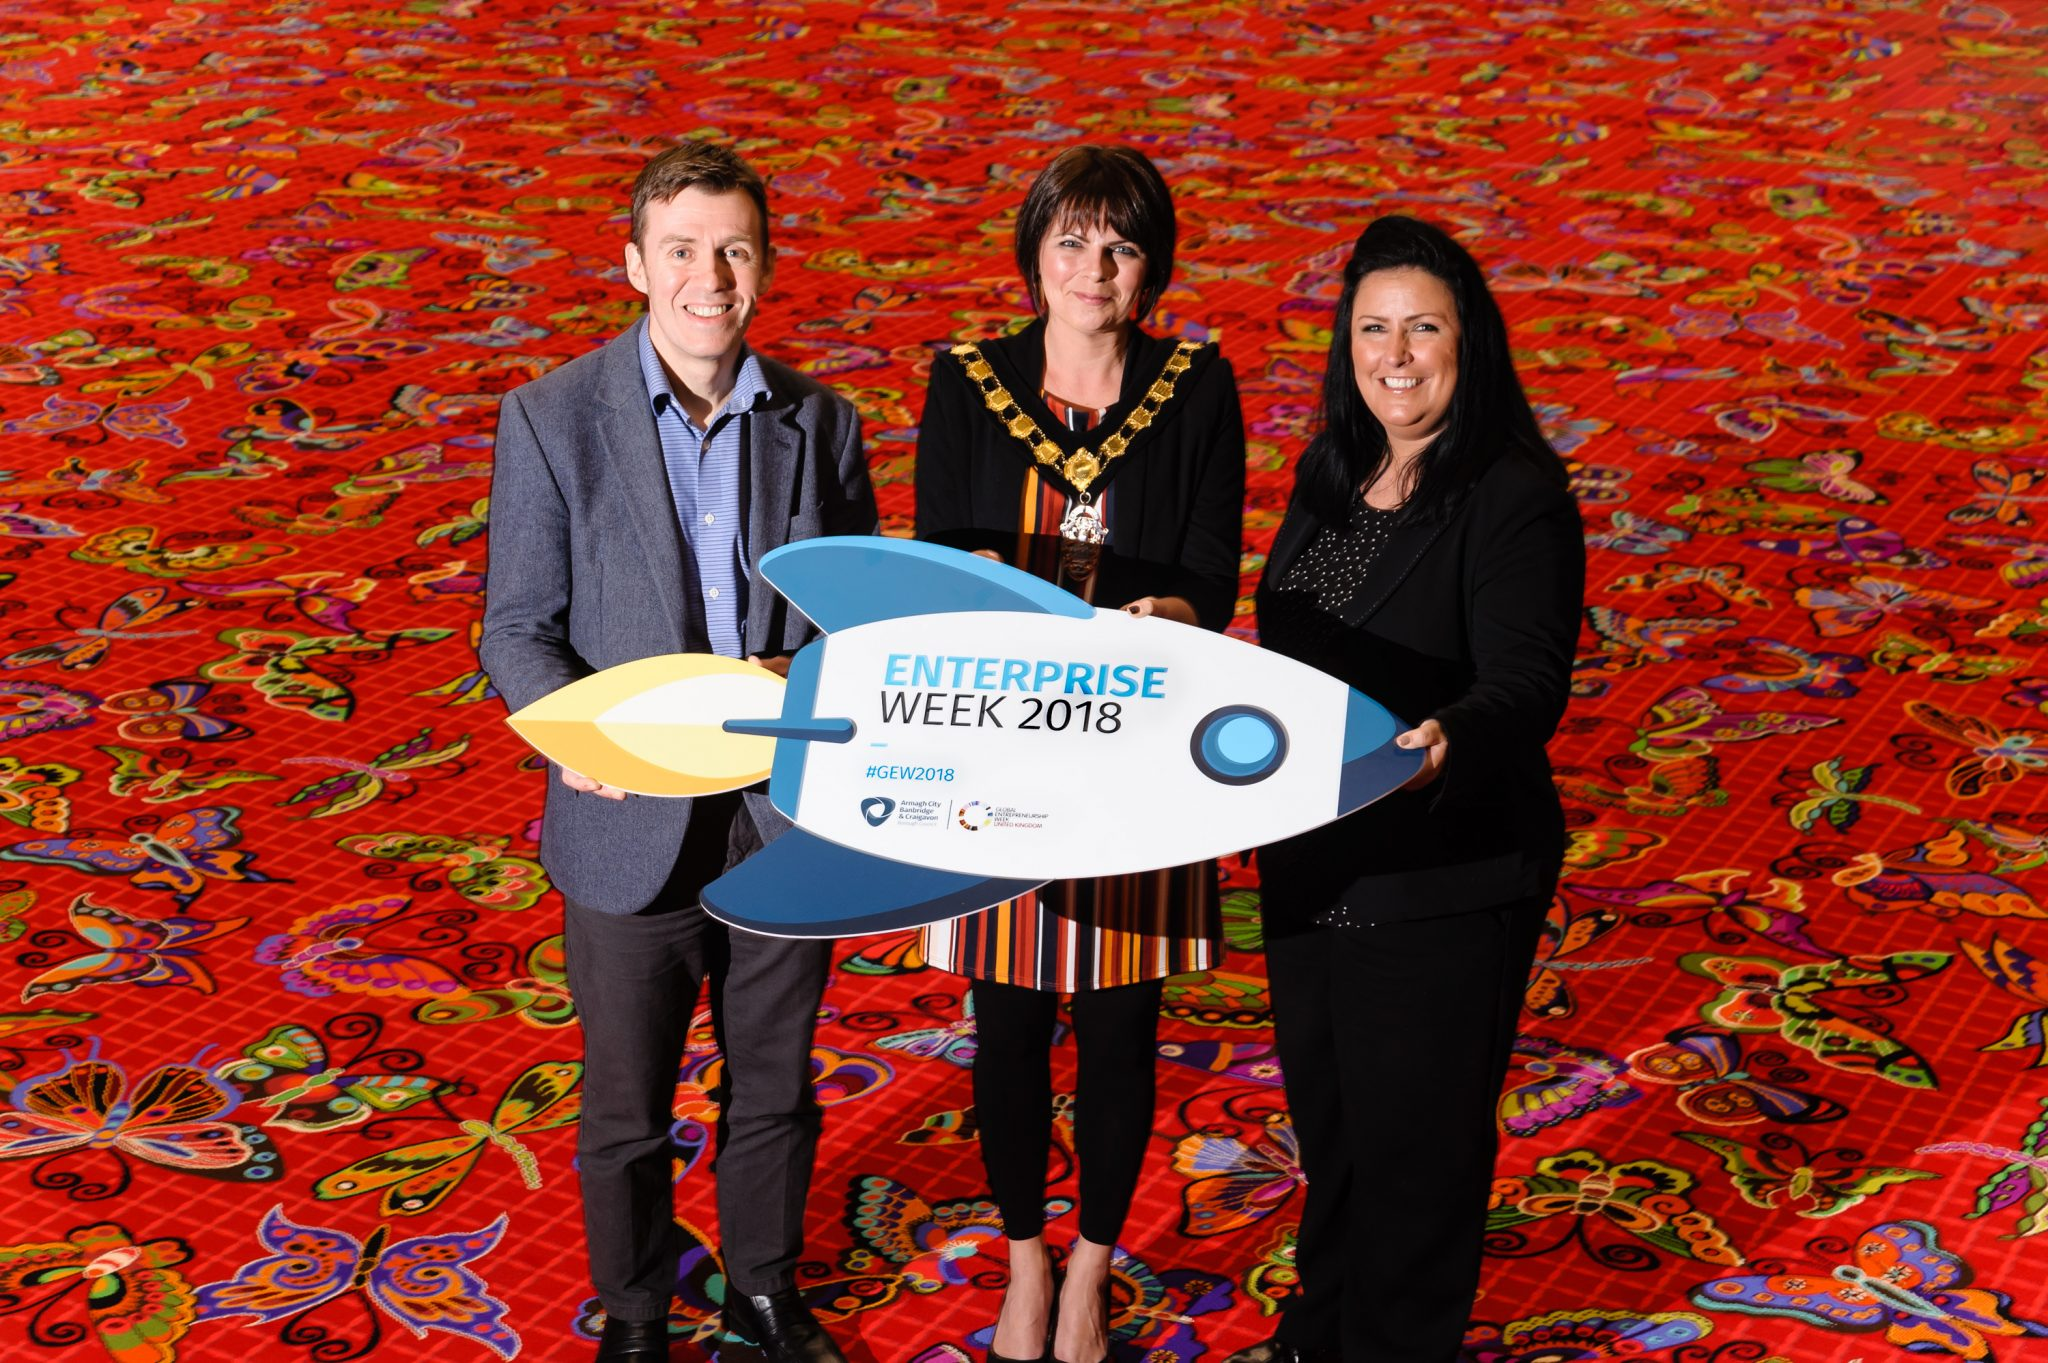 Council Rolls Out 2018 Enterprise Week Armagh City